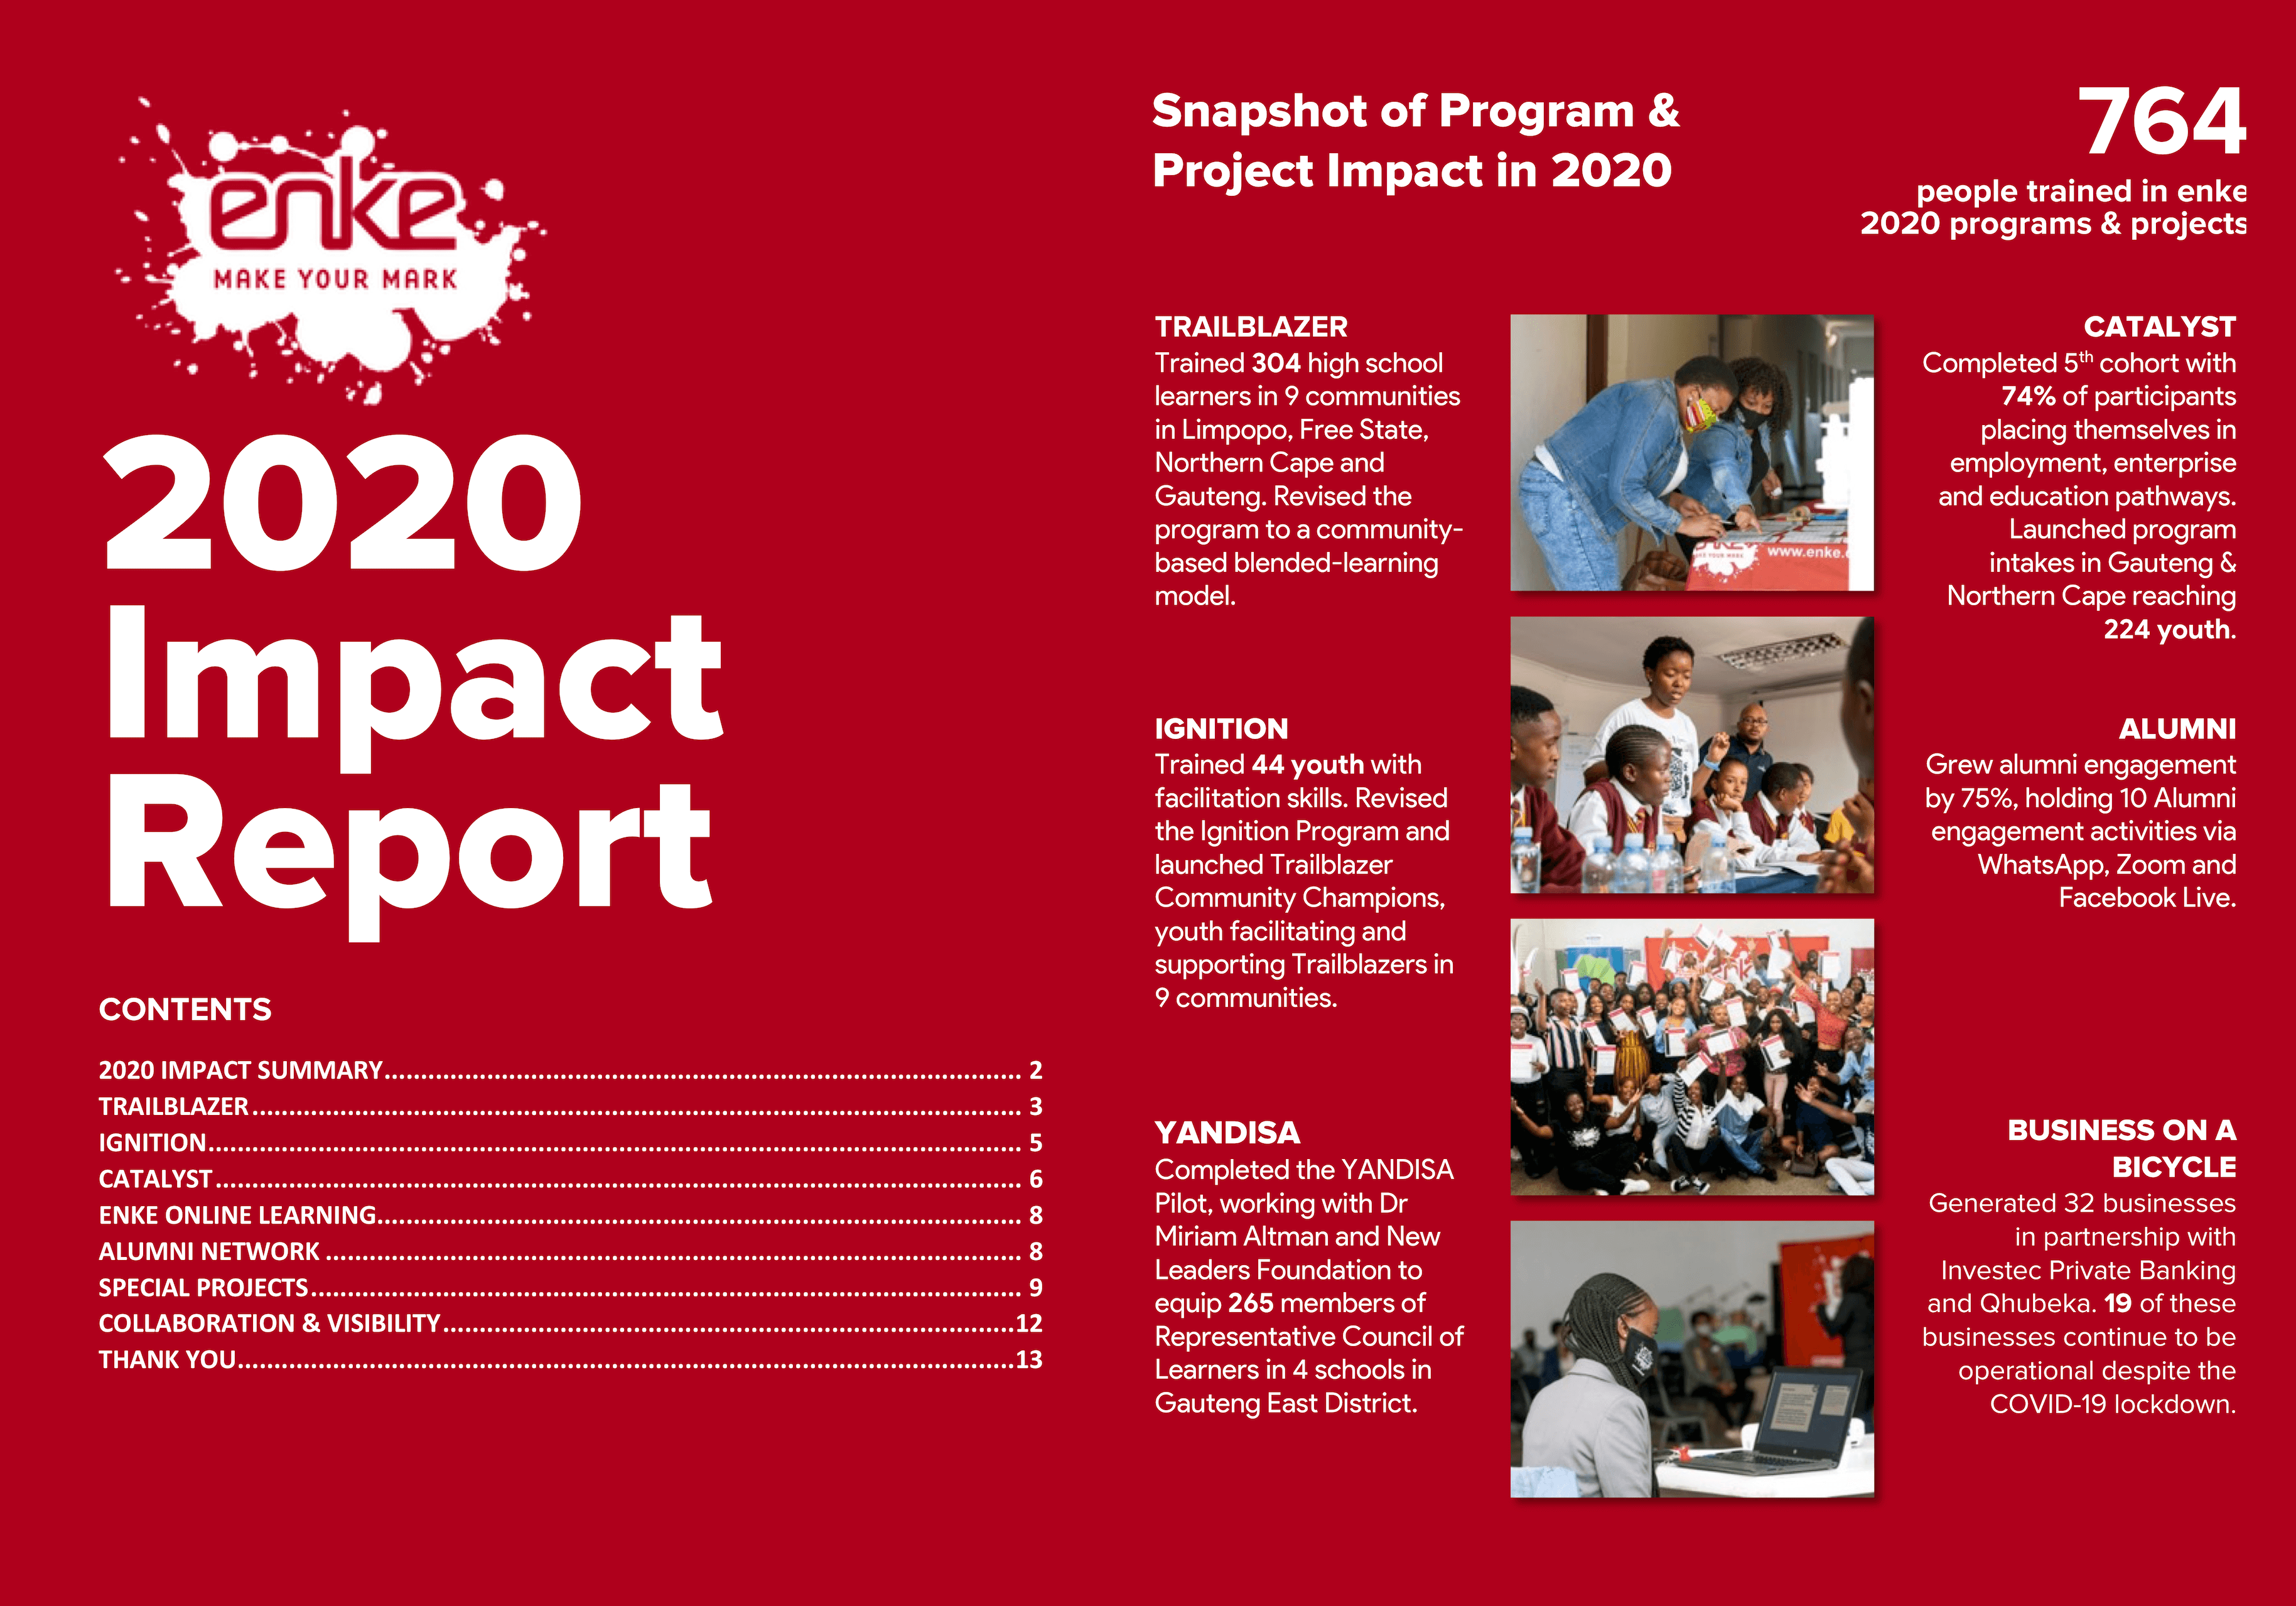 2020 Year-End Impact Report